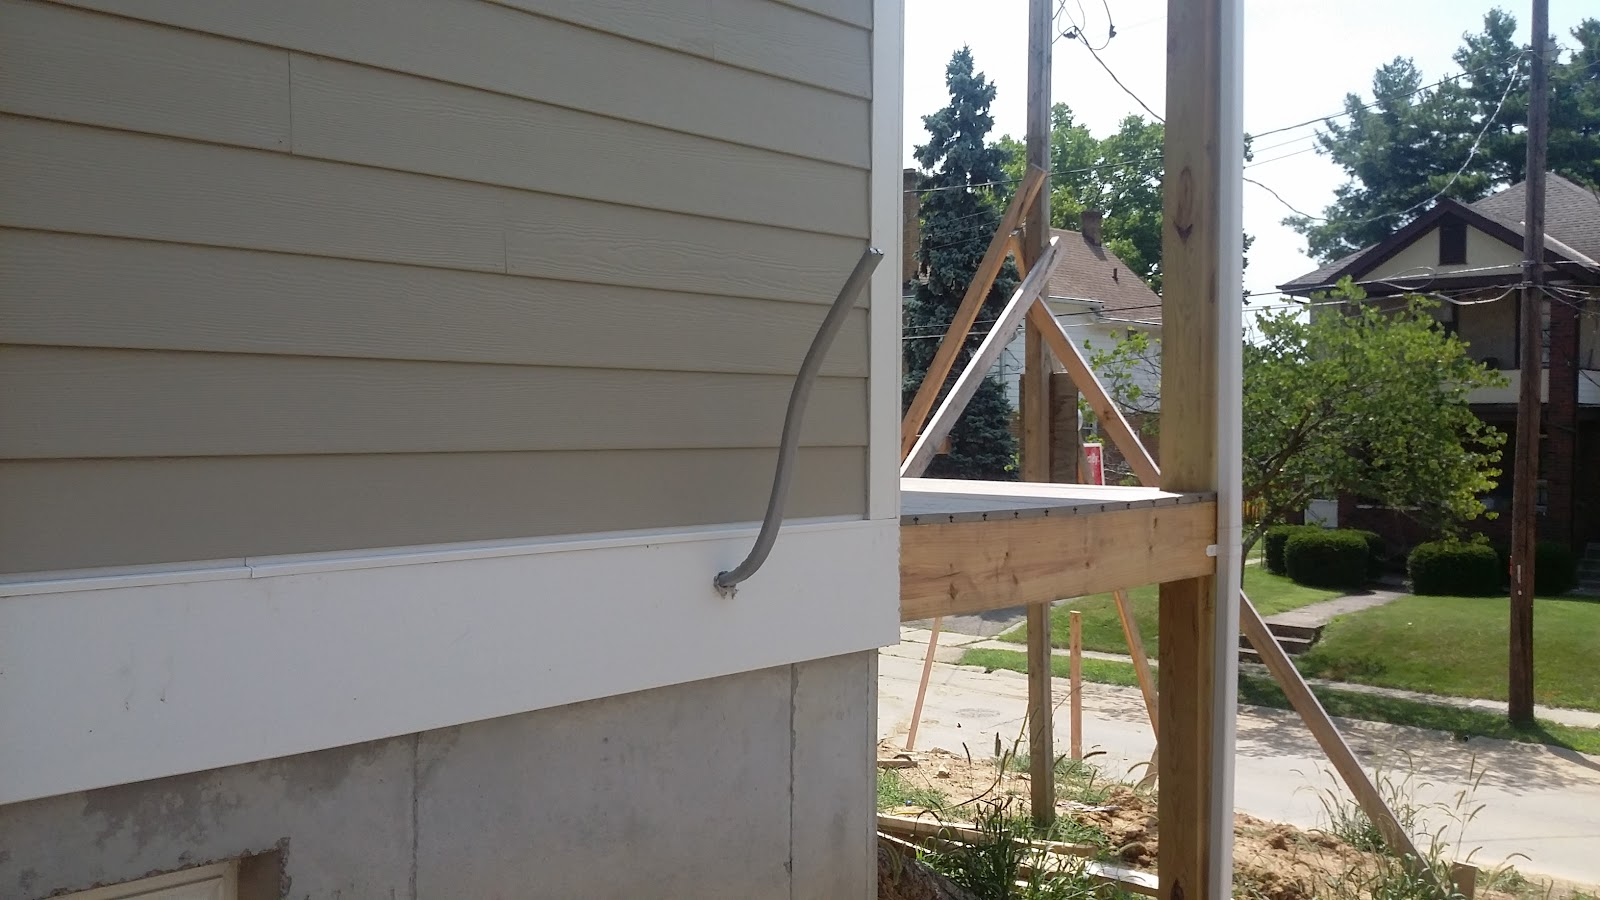 medium resolution of  panel box in the front corner of the basement and providing conduits for the home run wiring and outlets mounted along the concrete foundation walls